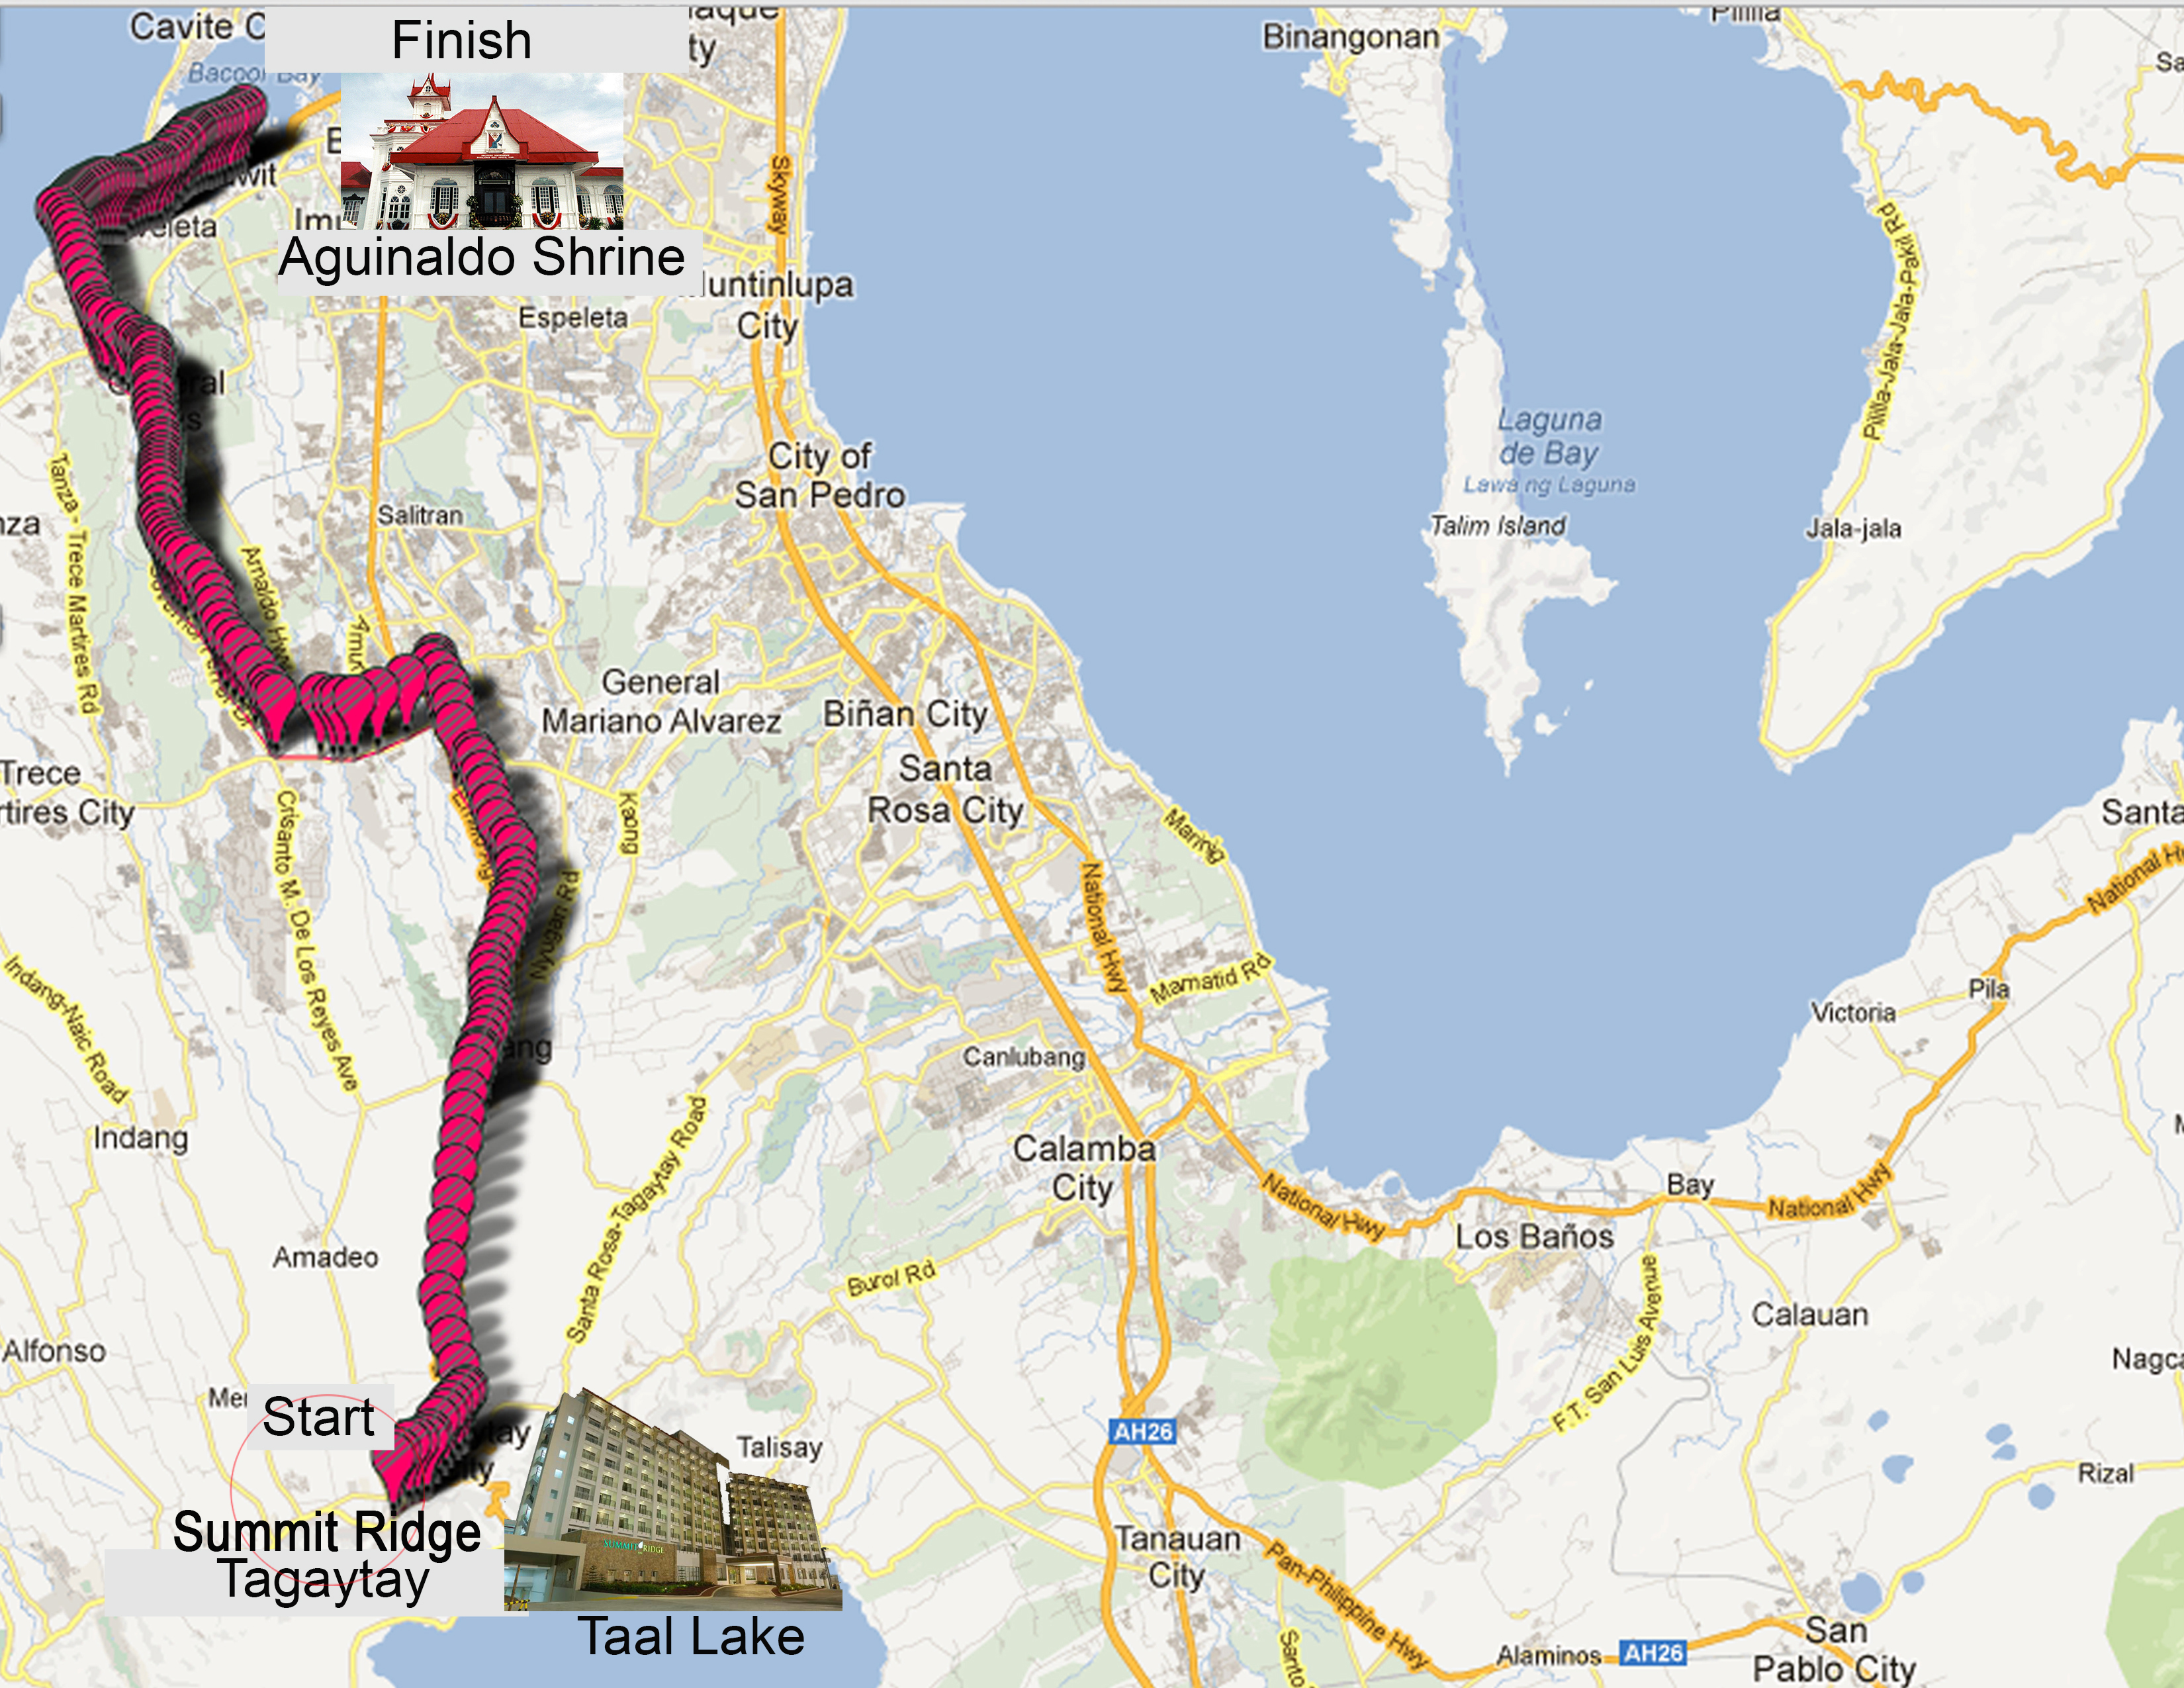 tagaytay-to-kawit-50k-ultramarathon-2013-route-map